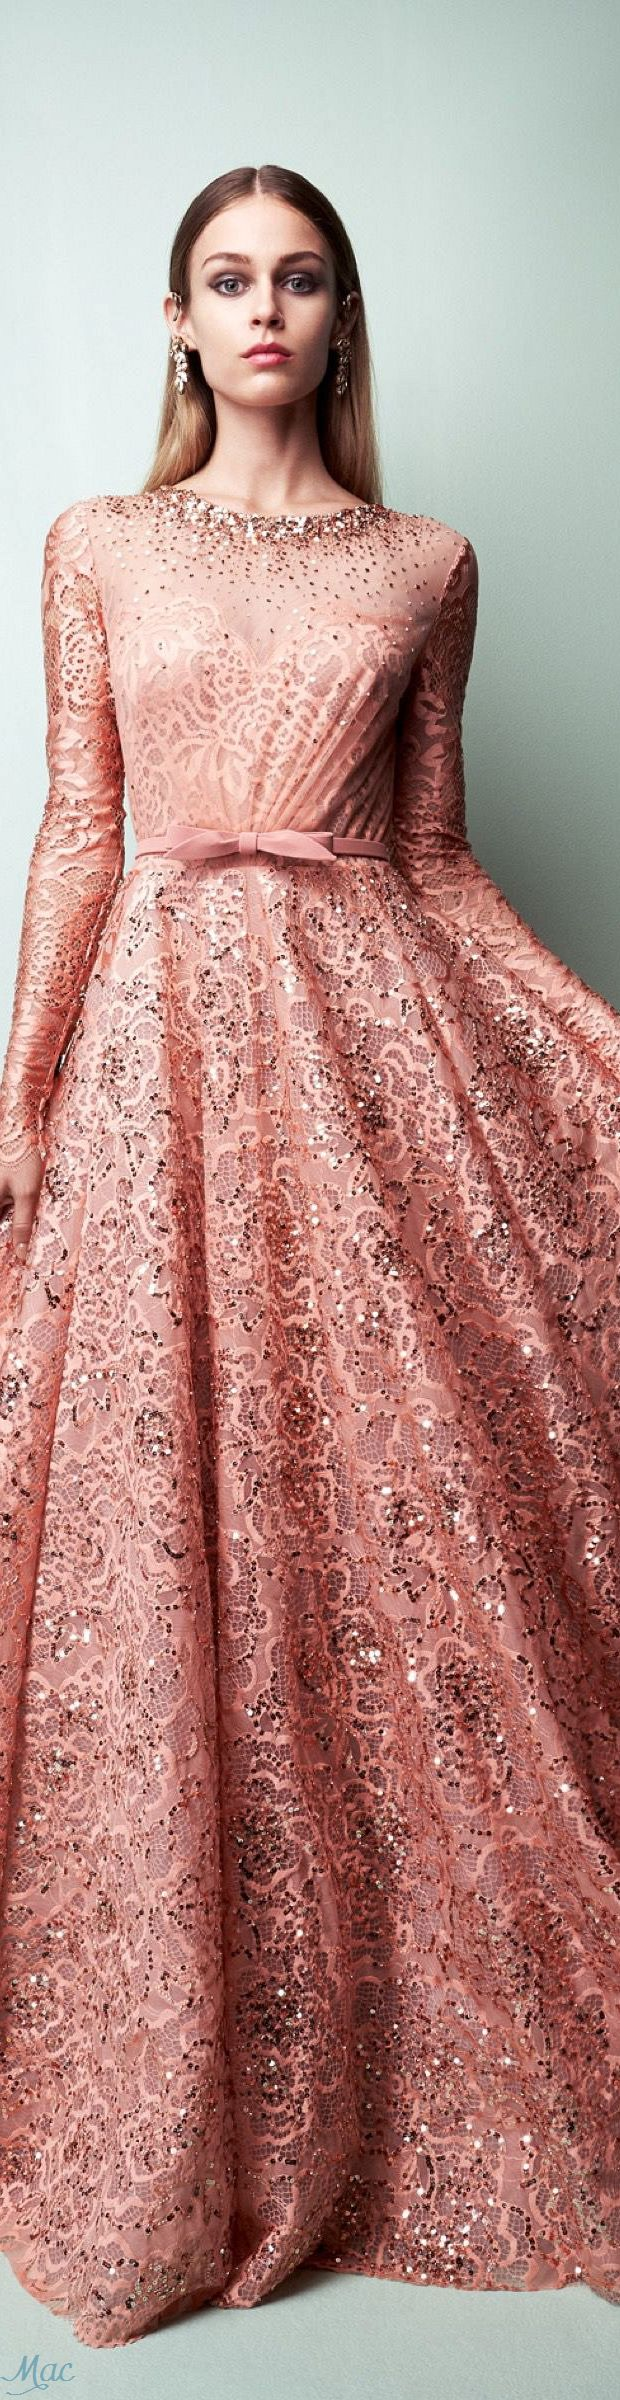 3826 best M2 images on Pinterest | High fashion, Floral fashion and ...